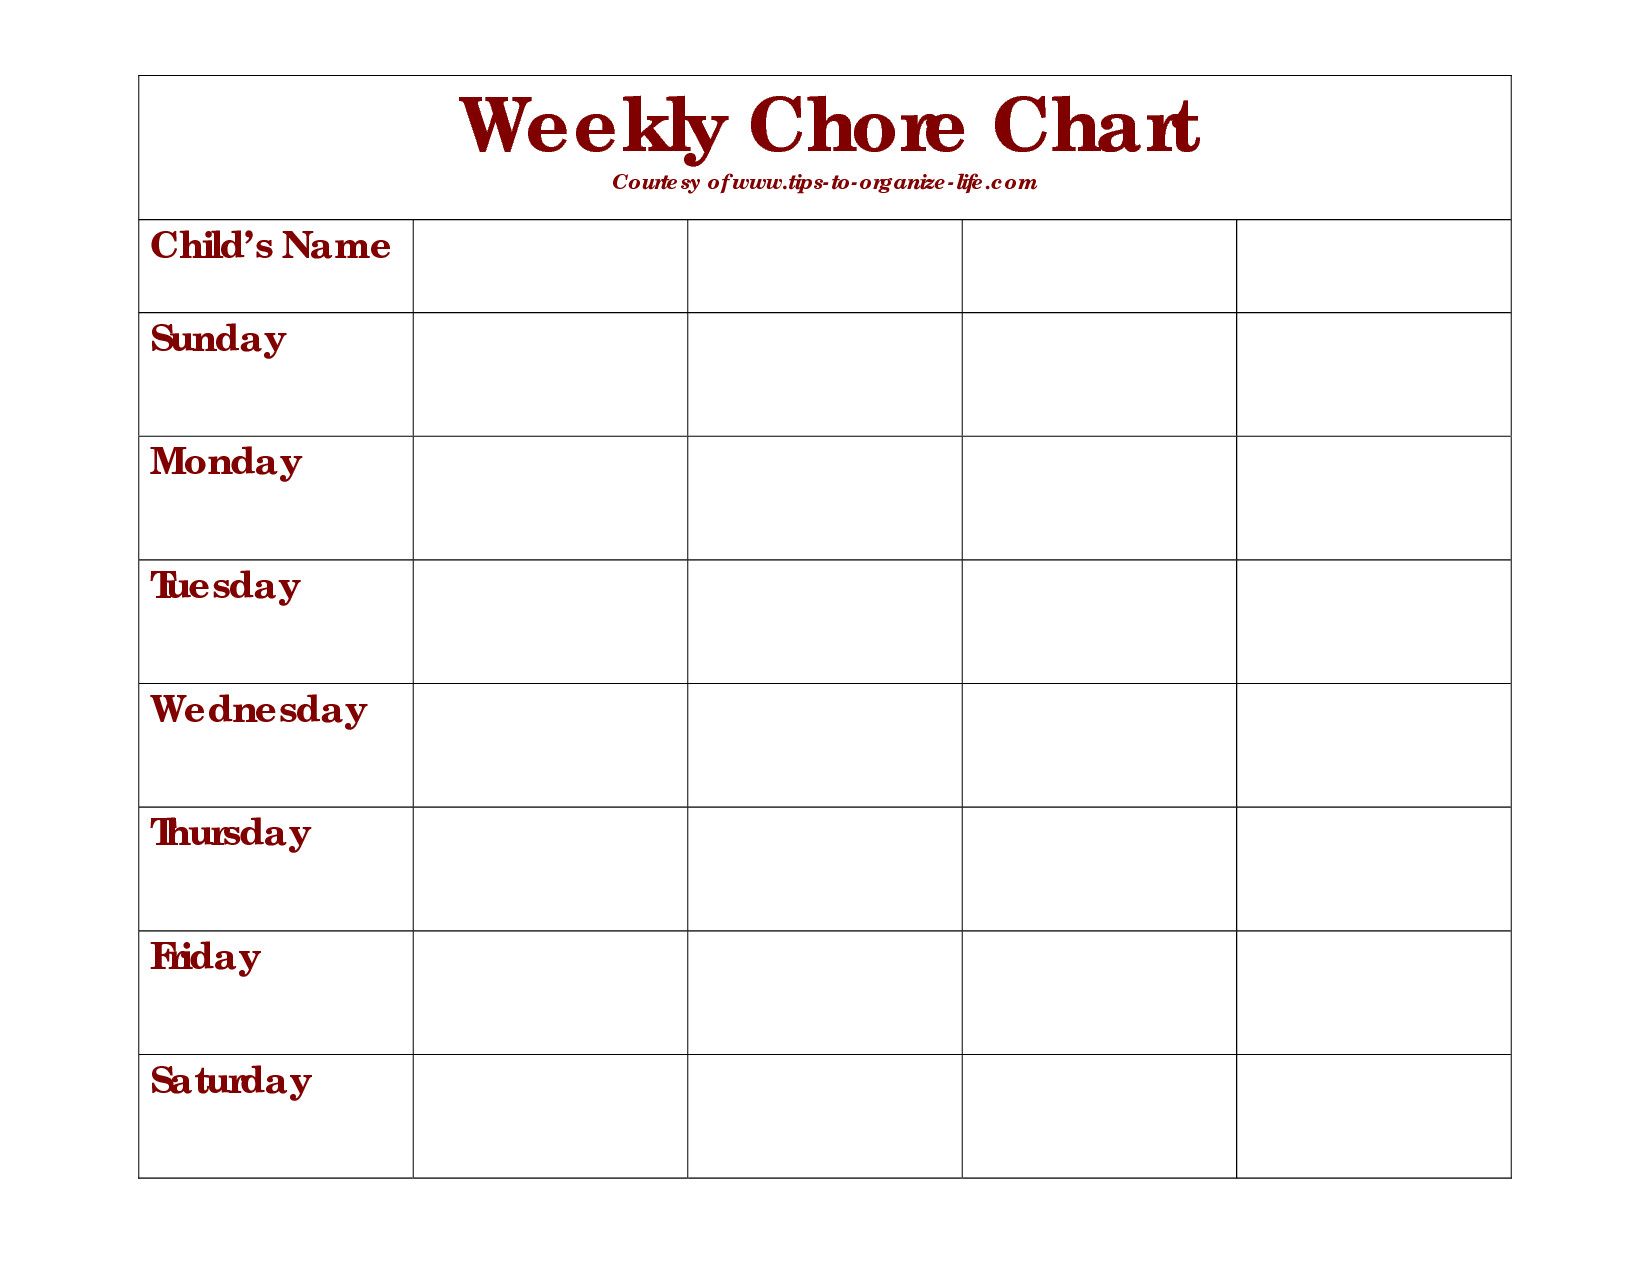 Monthly Chore Chart Template Weekly Chore Chart